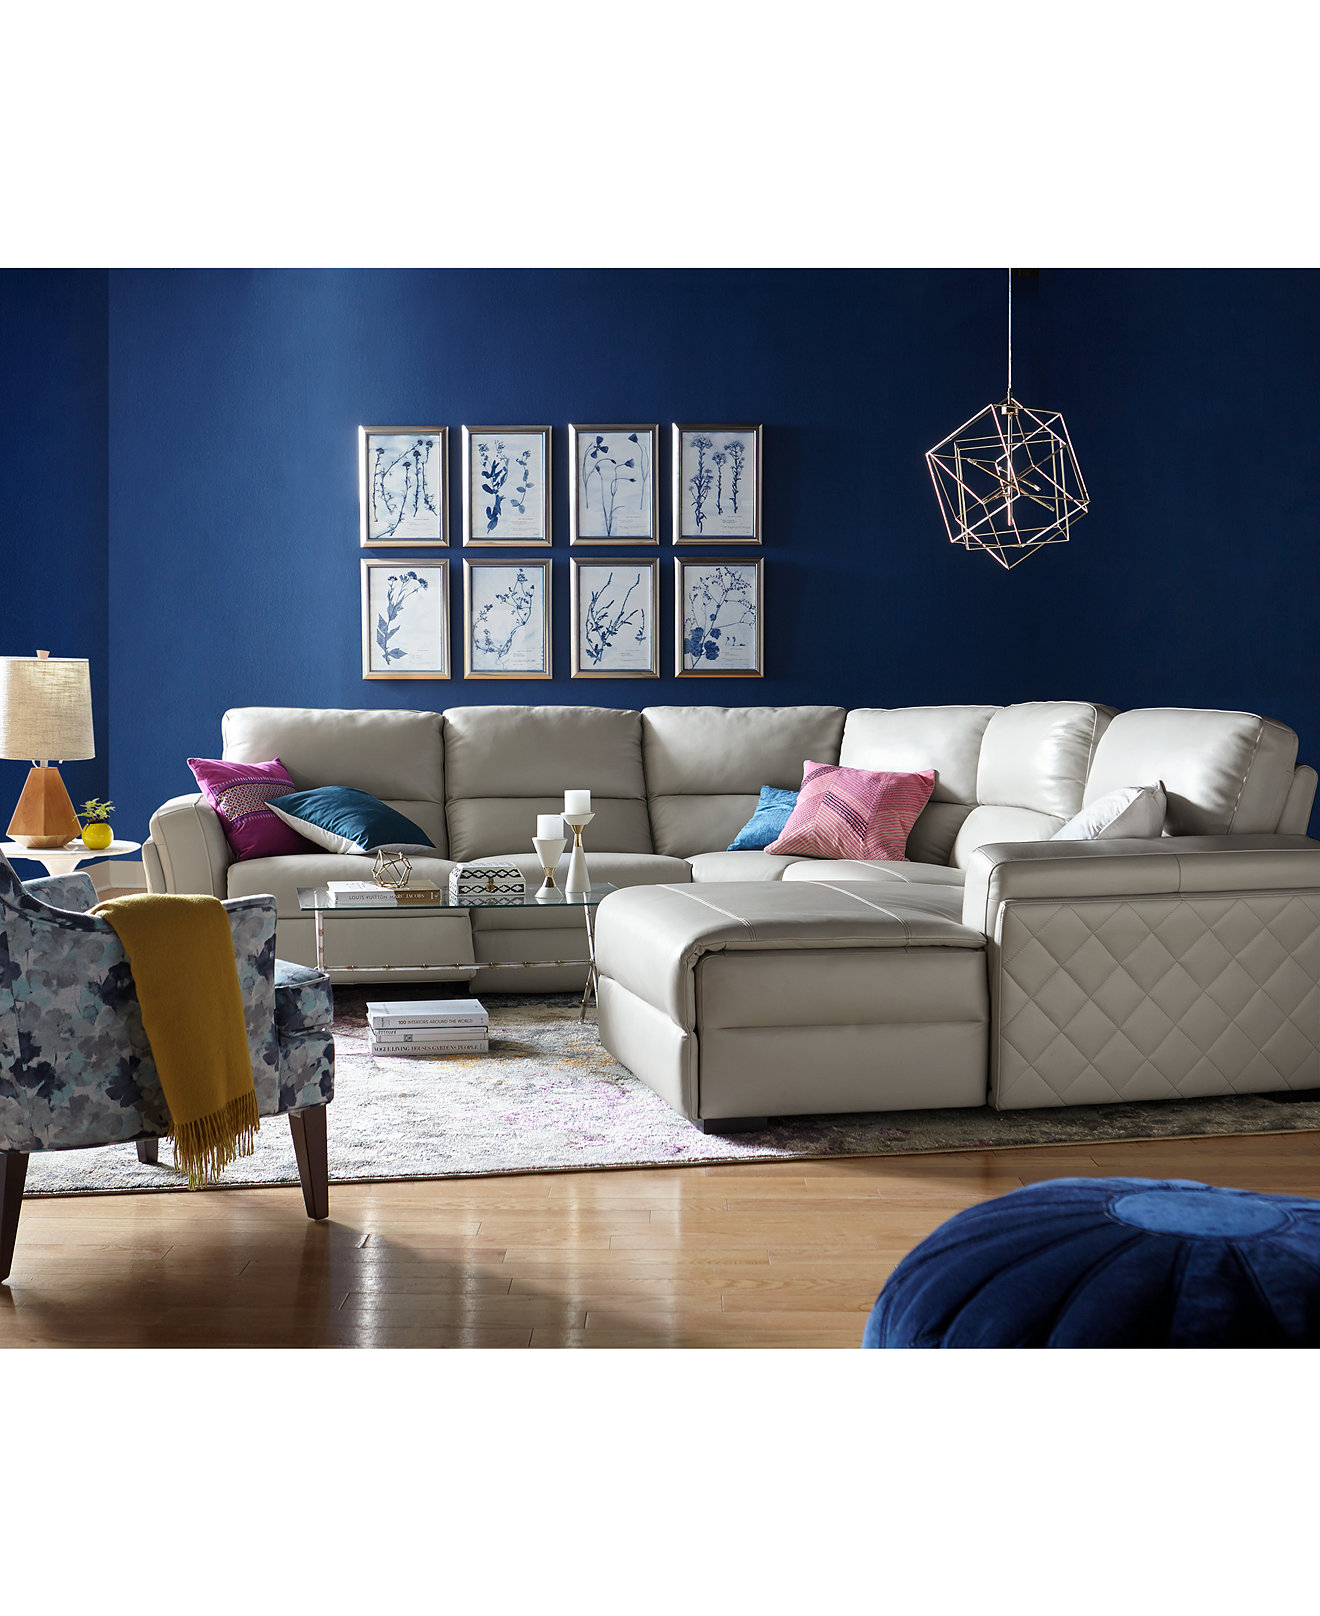 Jessi Leather Power Reclining Sectional Sofa Collection, Created for Macy's